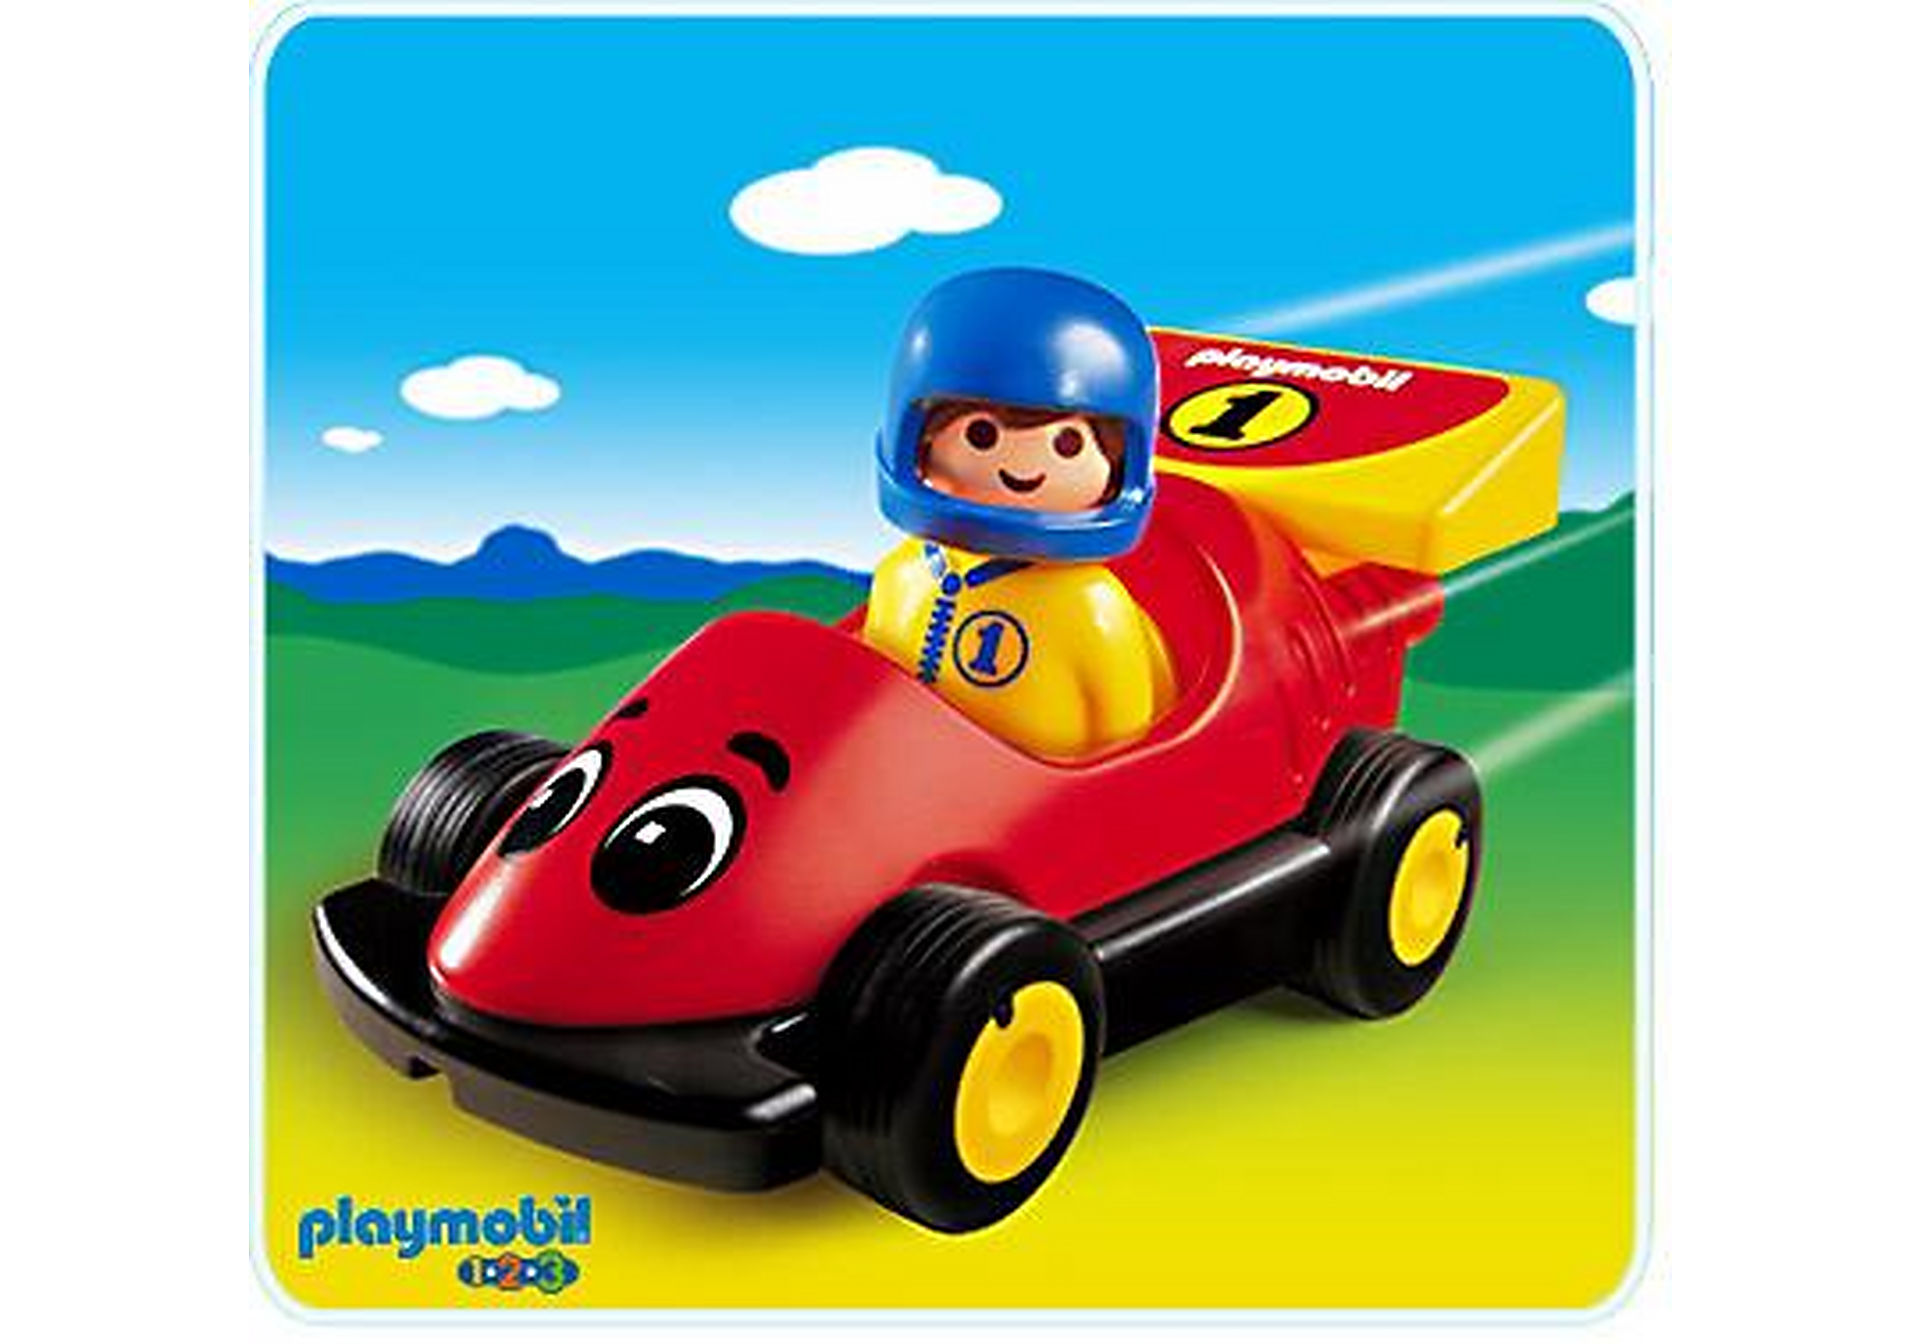 http://media.playmobil.com/i/playmobil/6718-A_product_detail/Pilote / voiture de course 1.2.3